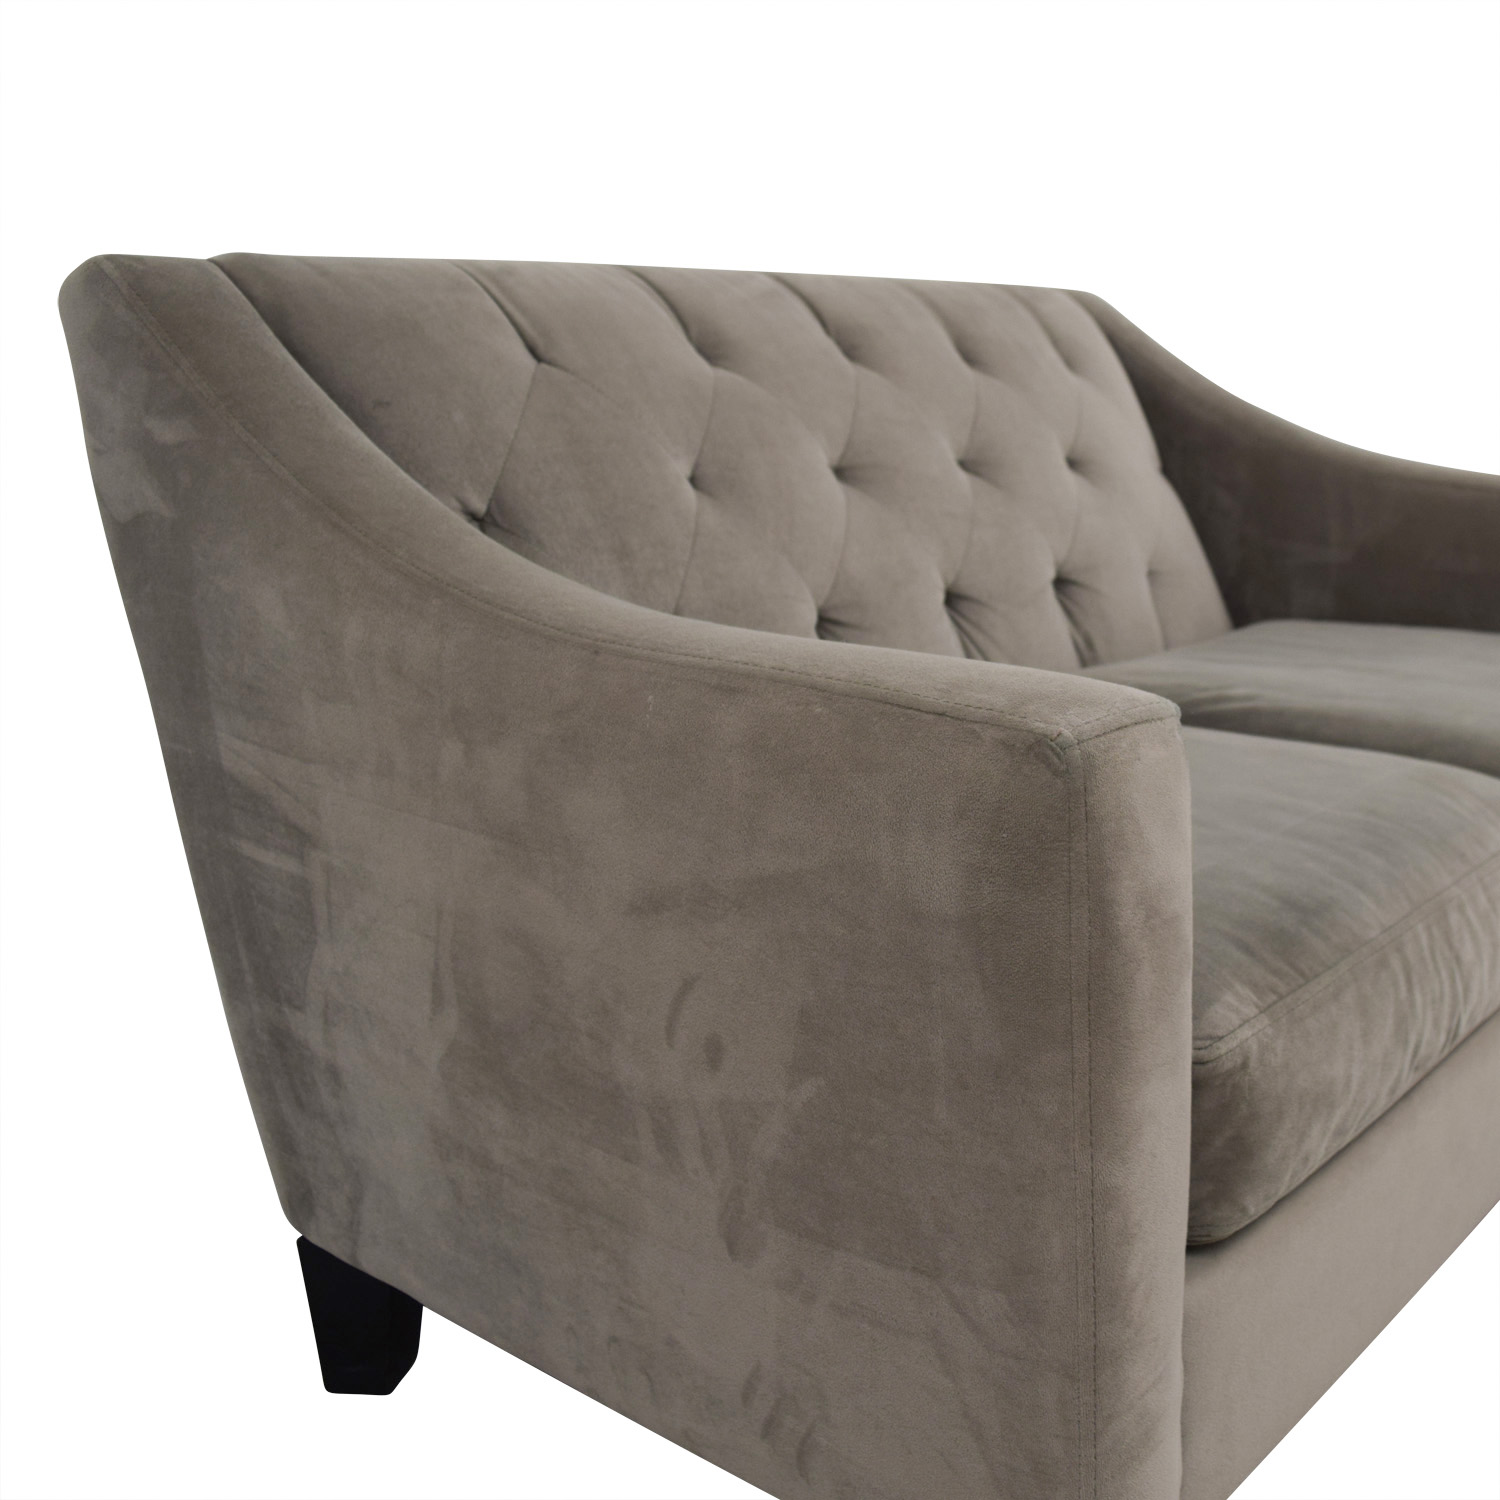 Better by Design Better by Design Grey Tufted Two-Cushion Sofa discount